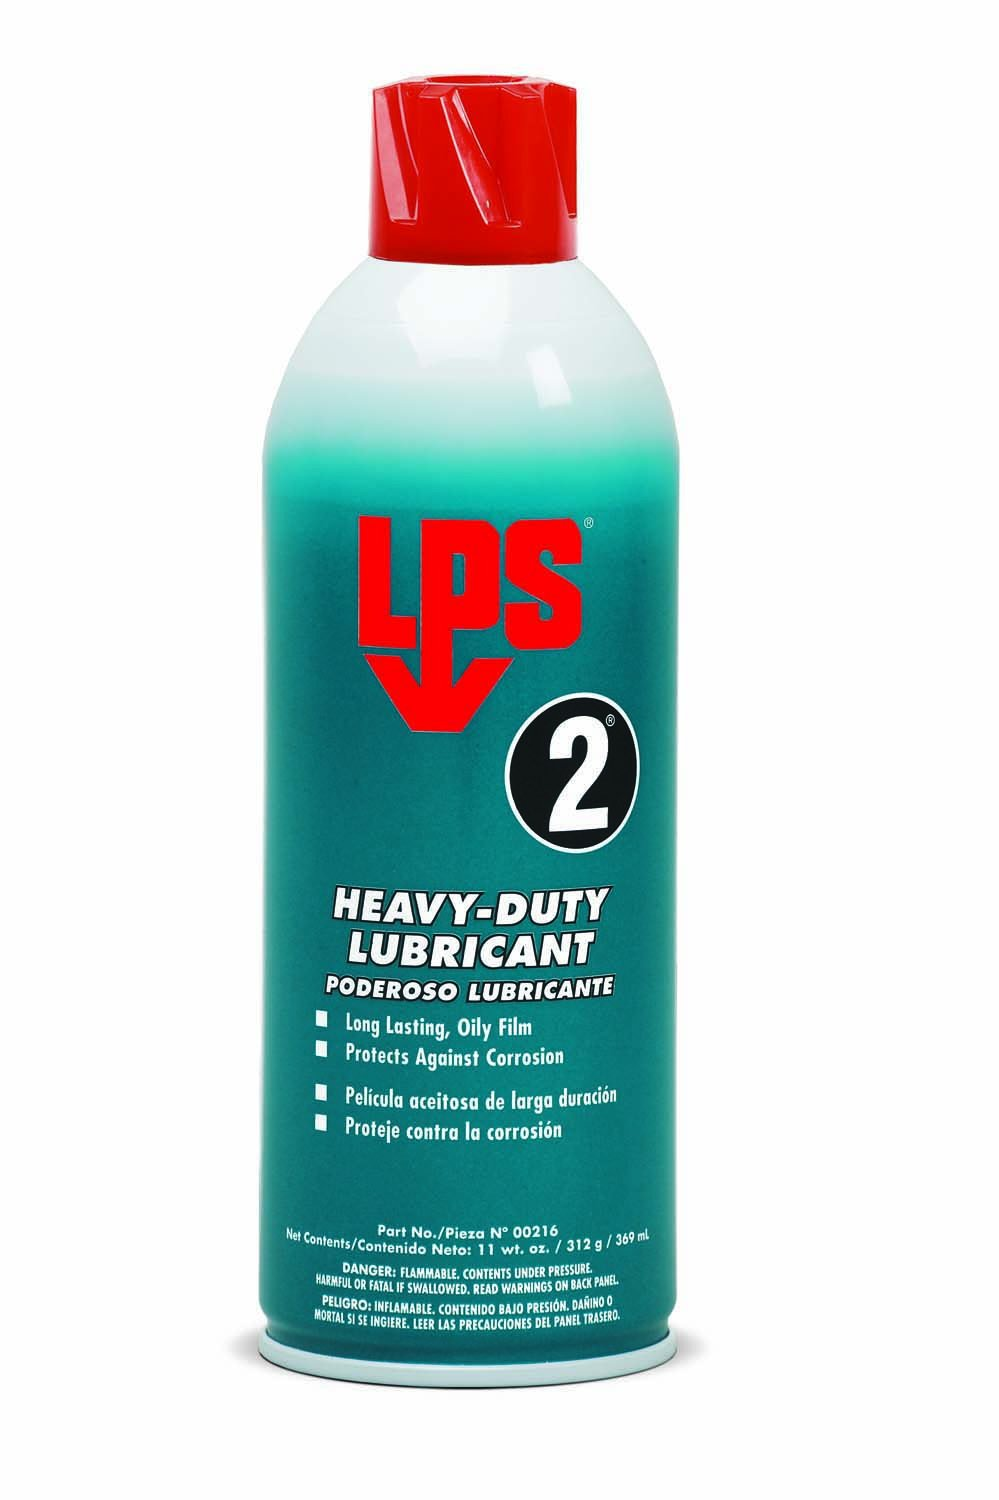 LPS 2 Heavy-Duty Lubricant, 11 oz Aerosol (Pack of 12) by LPS